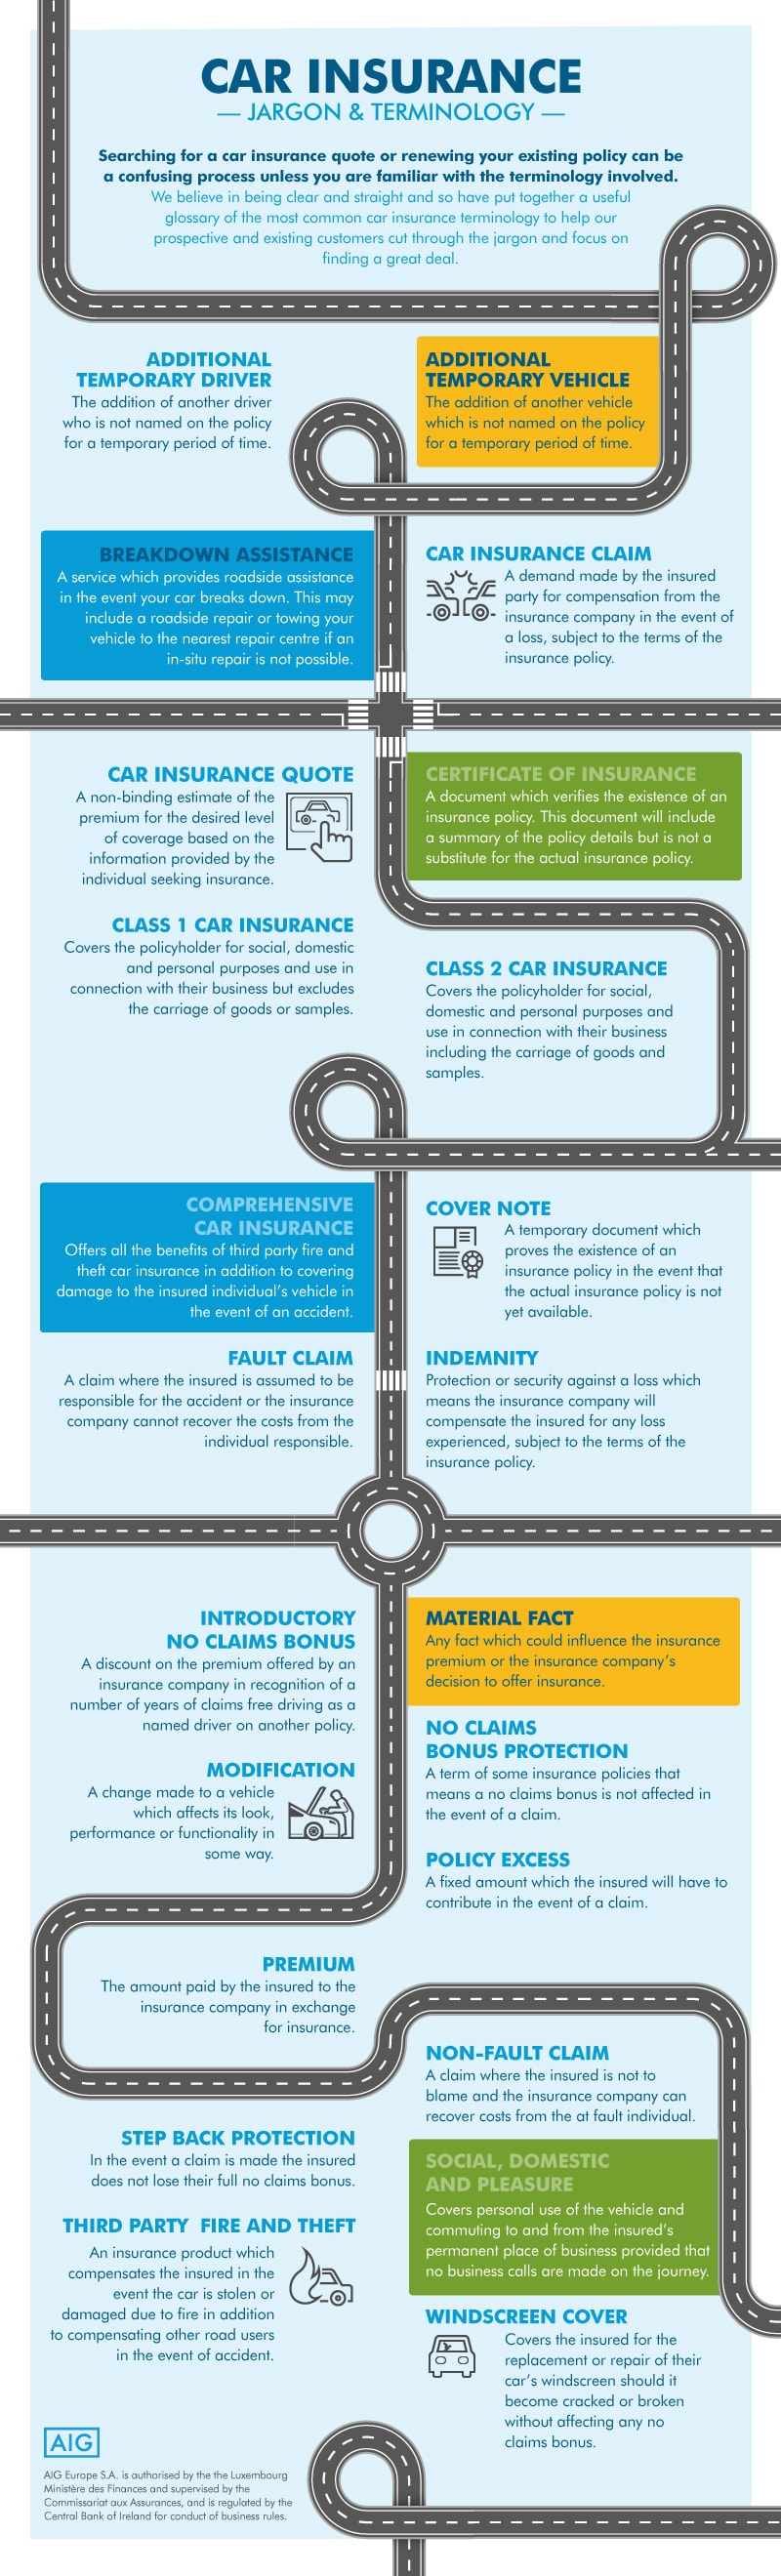 Car Insurance Jargon Infographic